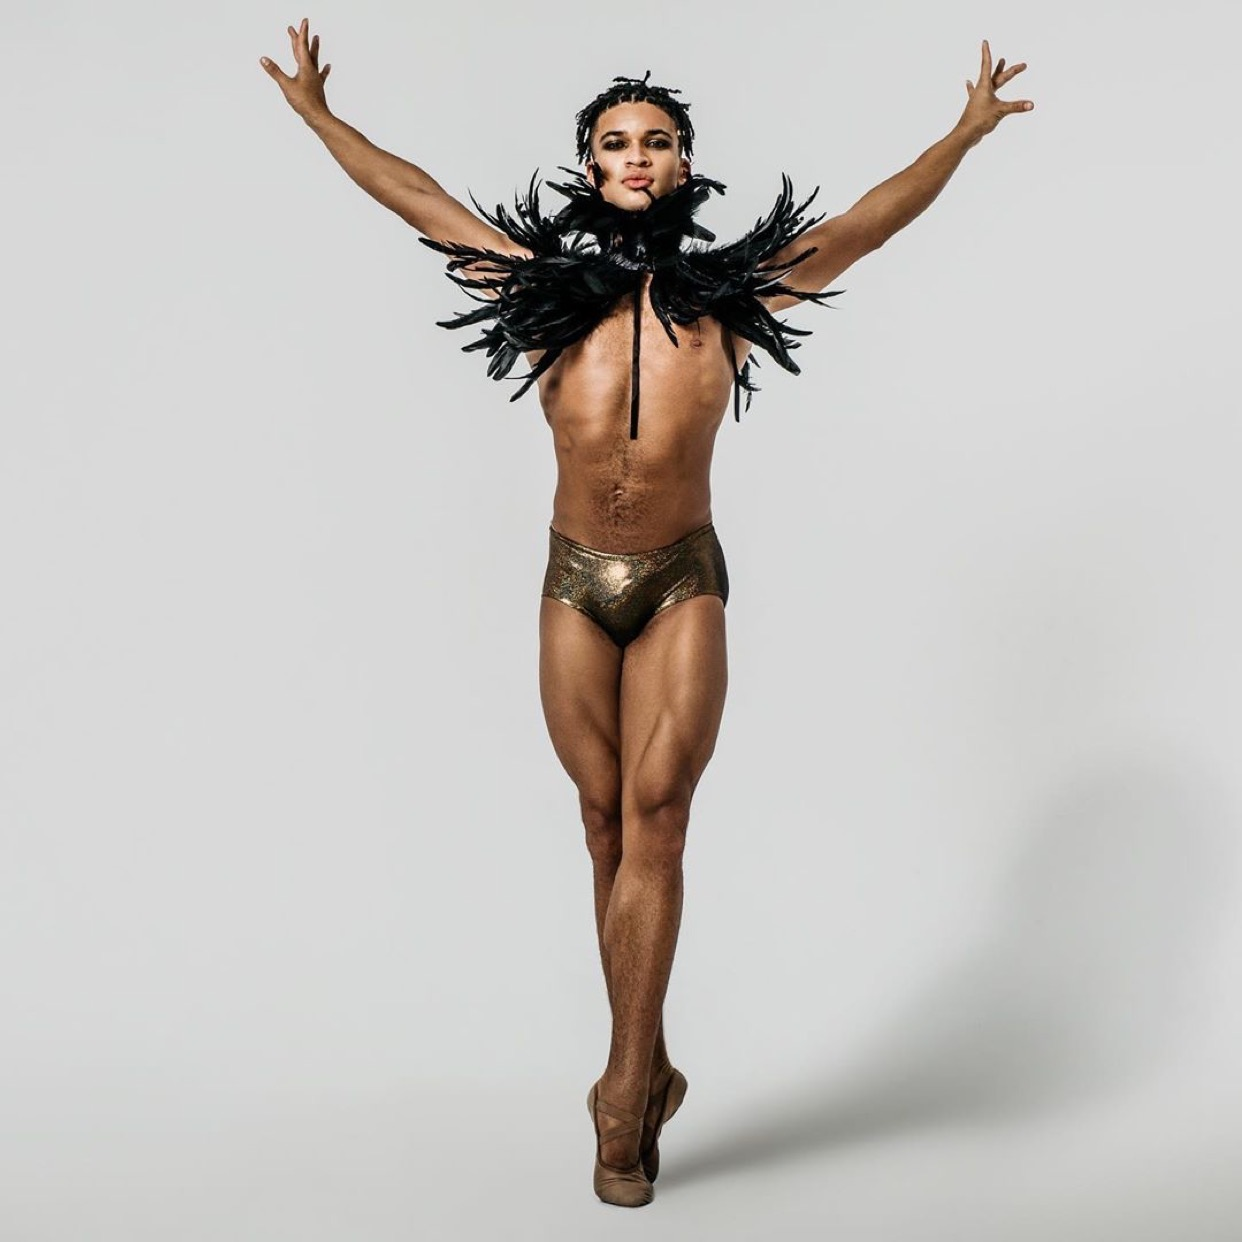 Dancer in white background wearing black feathers on shoulders and wearing ballet shoes.